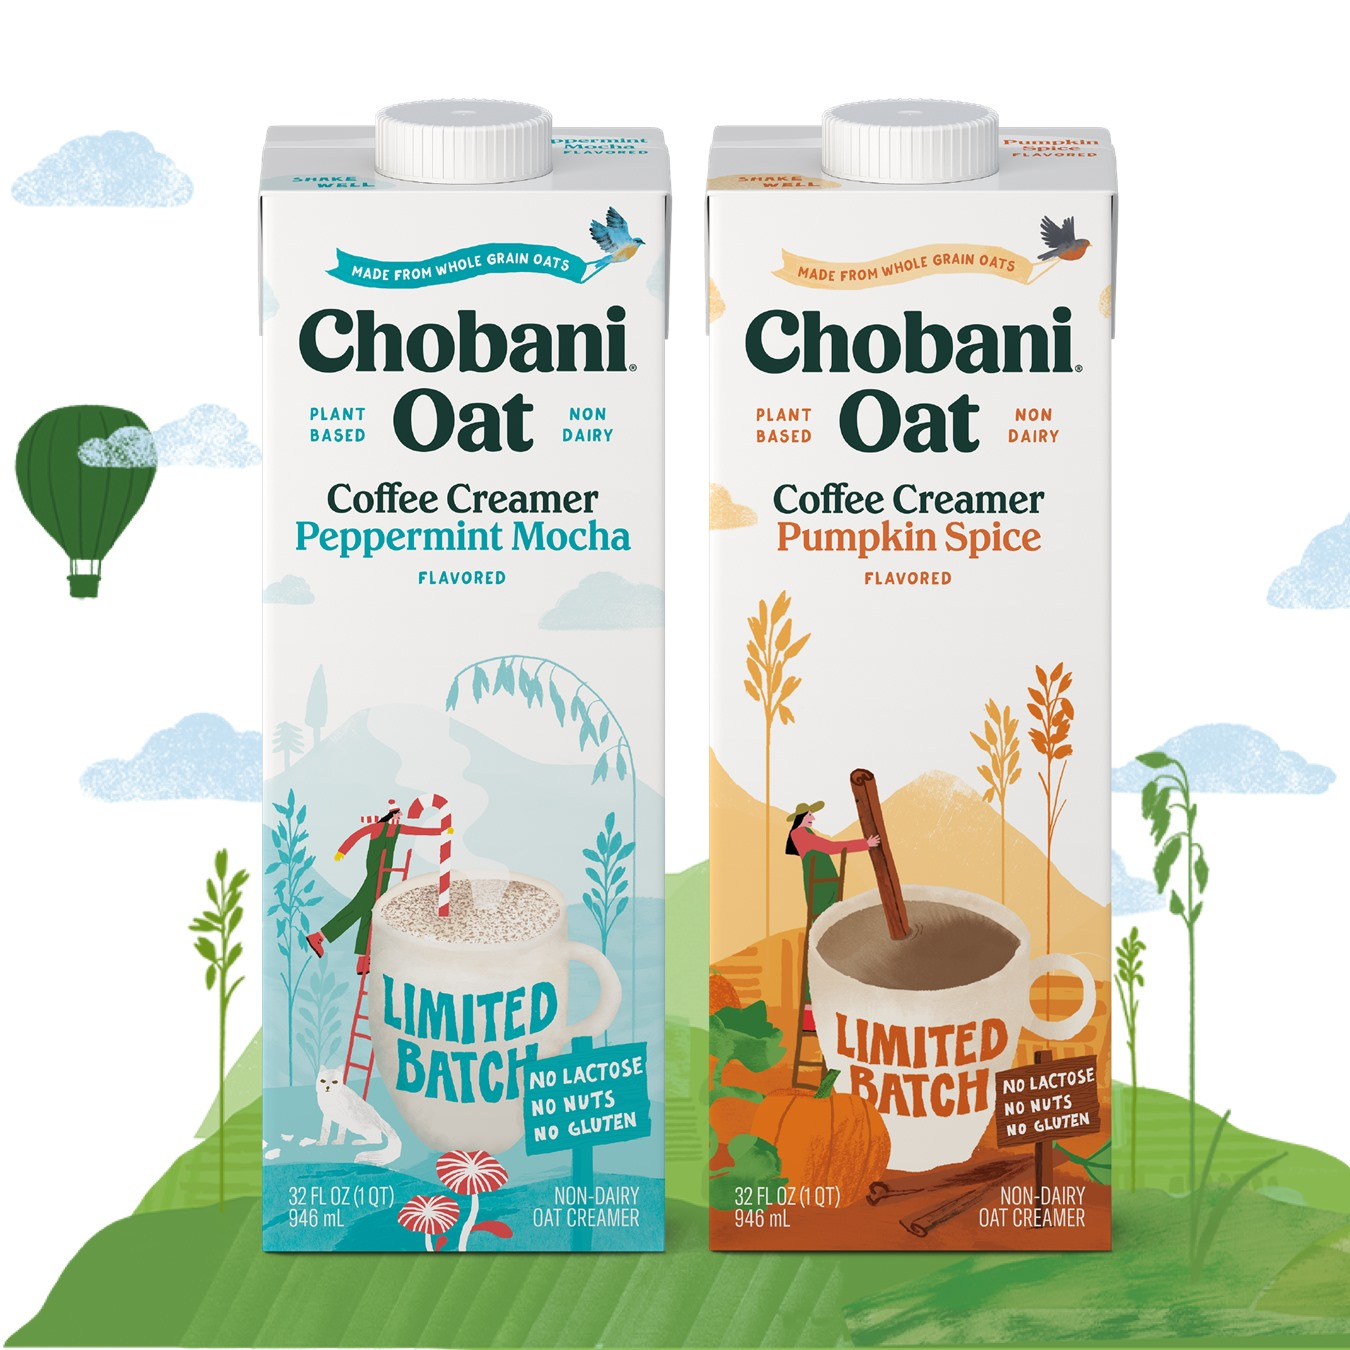 All the Dairy-Free Holiday Beverages and Creamers for the Season! Pictured: Chobani Vegan Oat Creamers in Seasonal Flavors